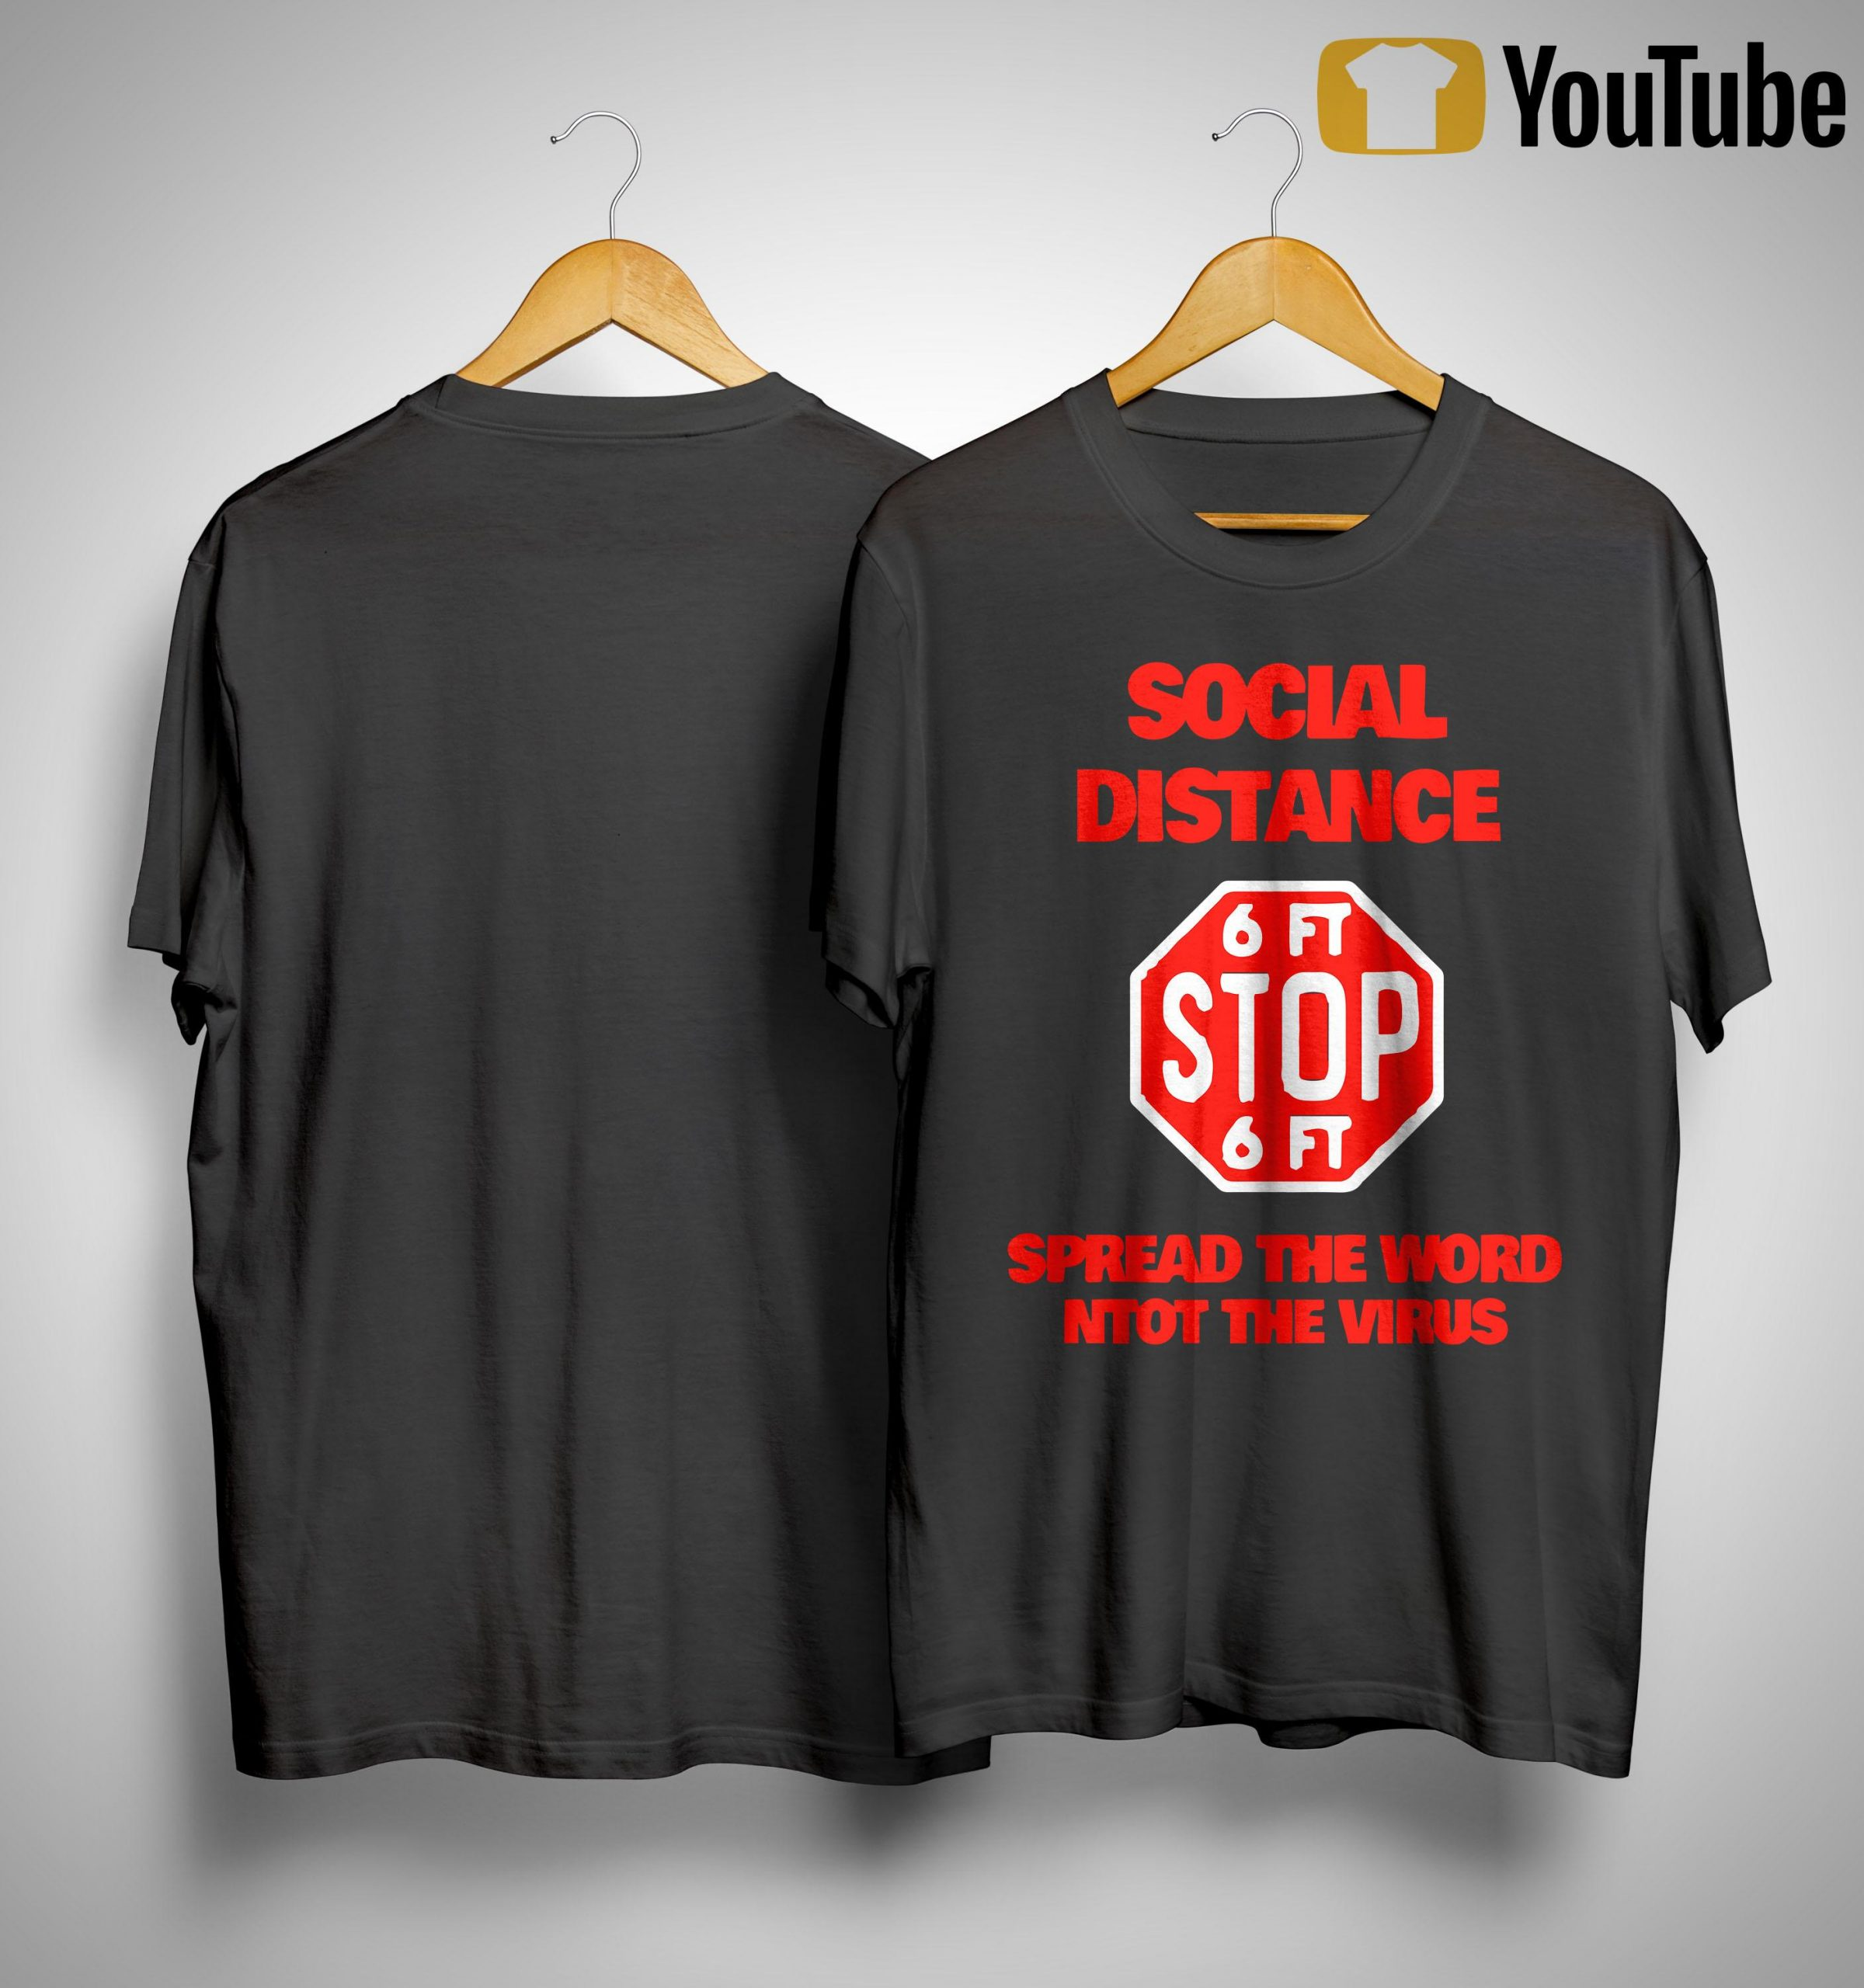 Social Distance 6ft Stop 6ft Spread The Word Ntot The Virus Shirt